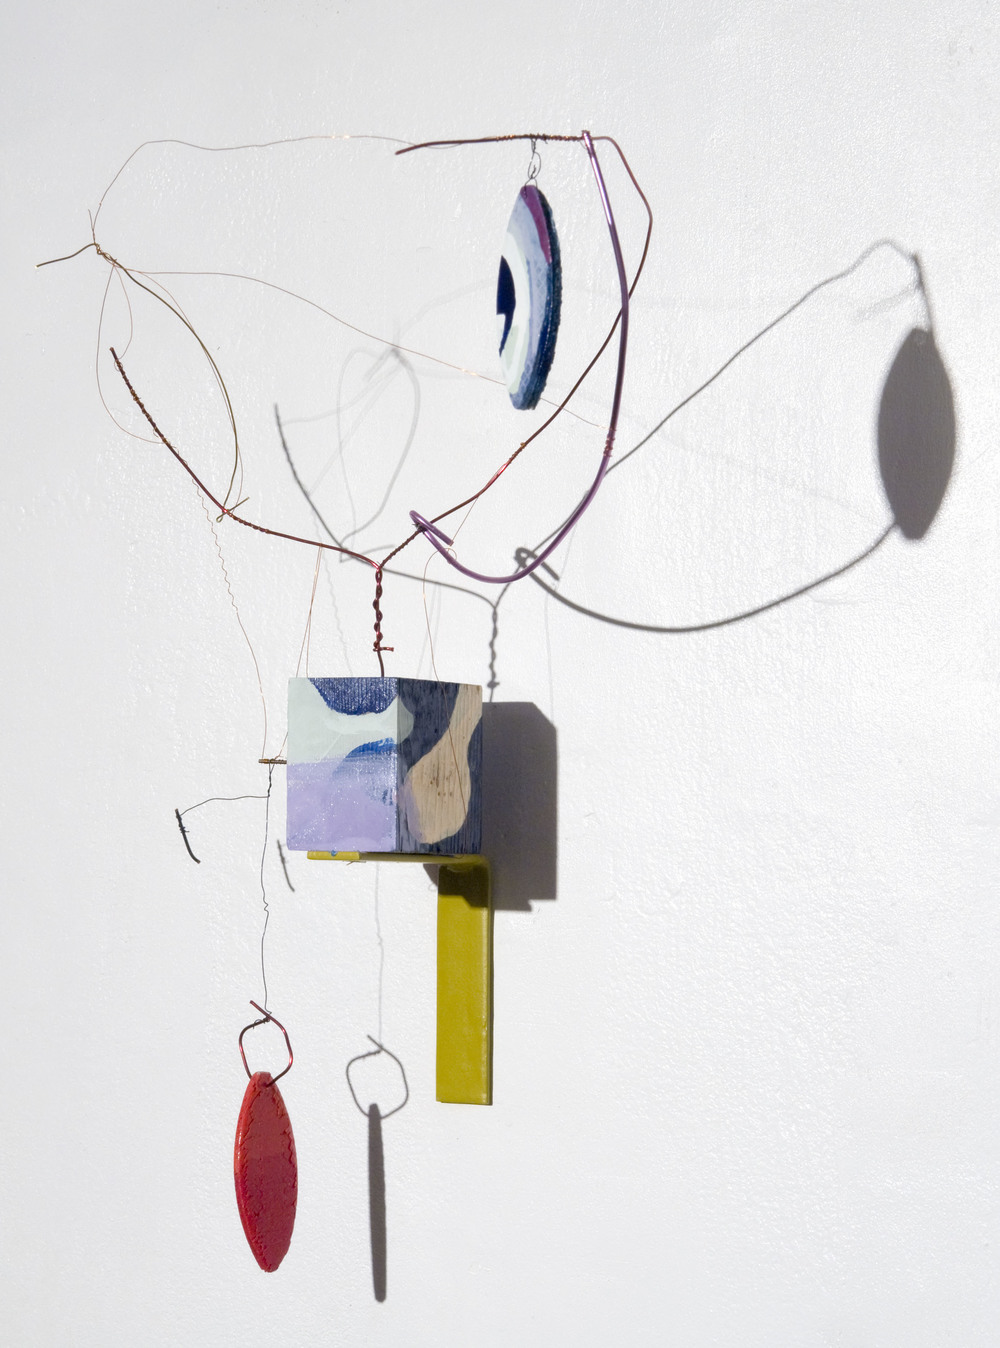 Maureen Cavanaugh.  Electric Orbit . Wire,wood, enamel paint. 14 inches x 10 inches. 2013.